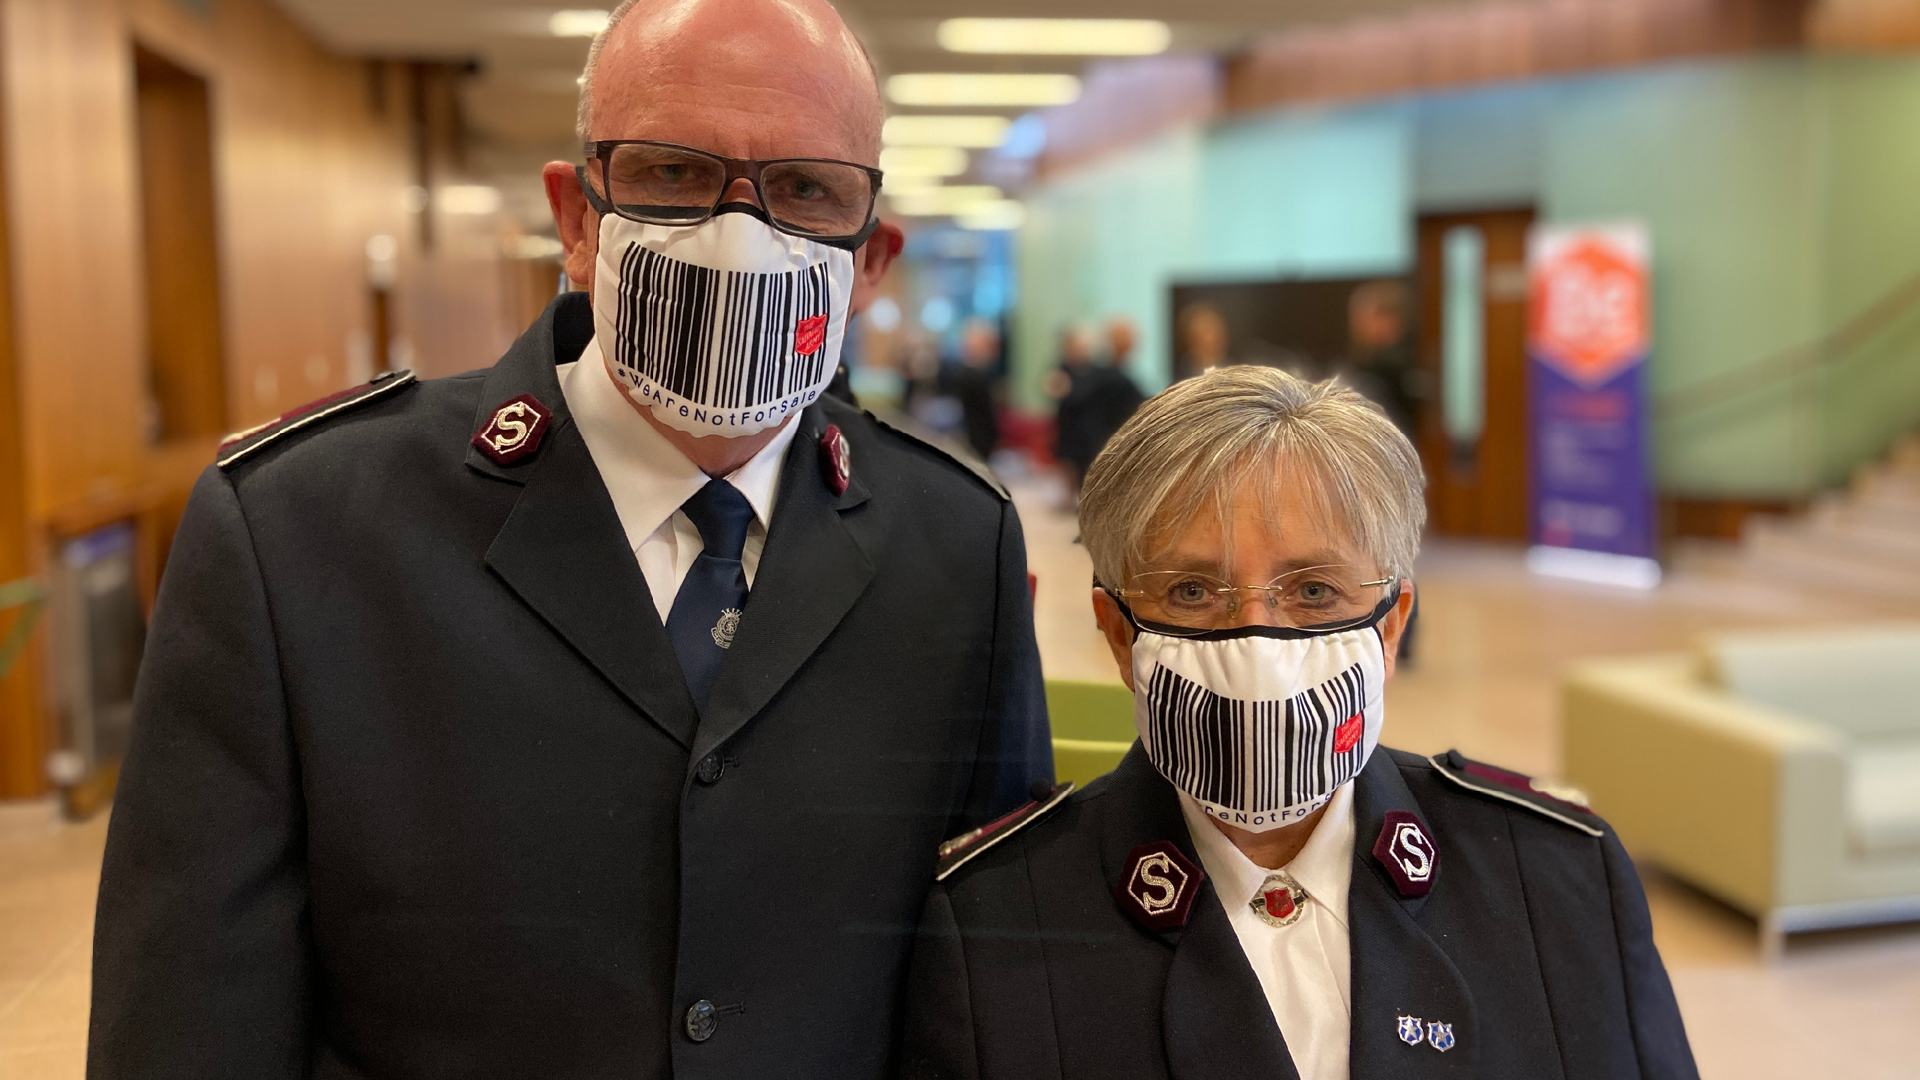 Recognition Express West Scotland, Lands National Contract for The Salvation Army Modern Slavery Face Mask Campaign